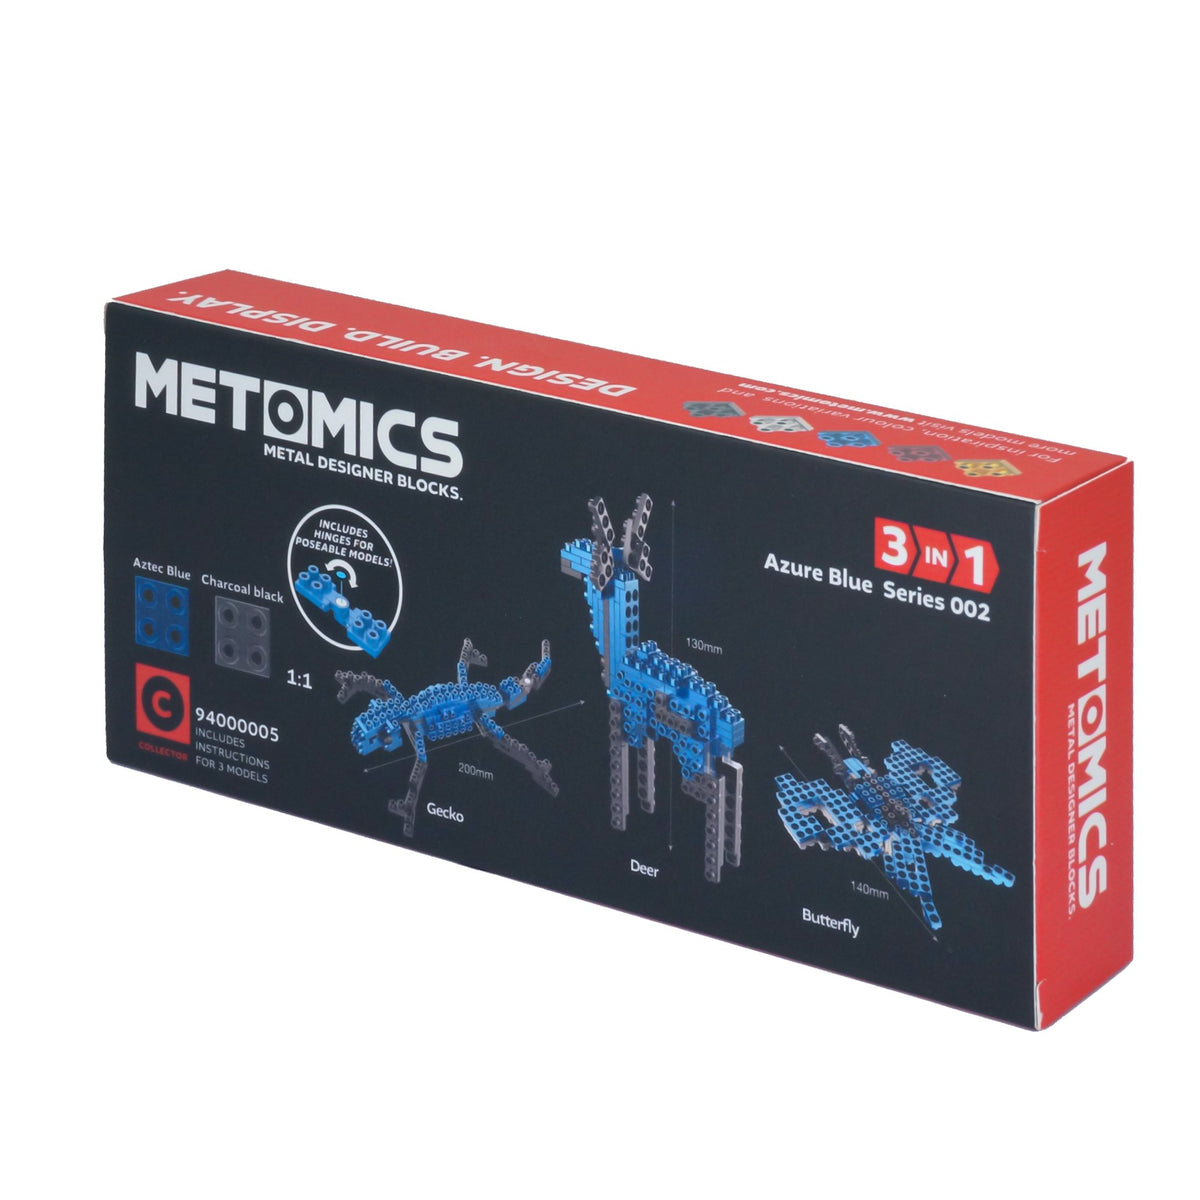 Metomics Butterfly 3-IN-1 150 Designer Aluminium Blocks Builds